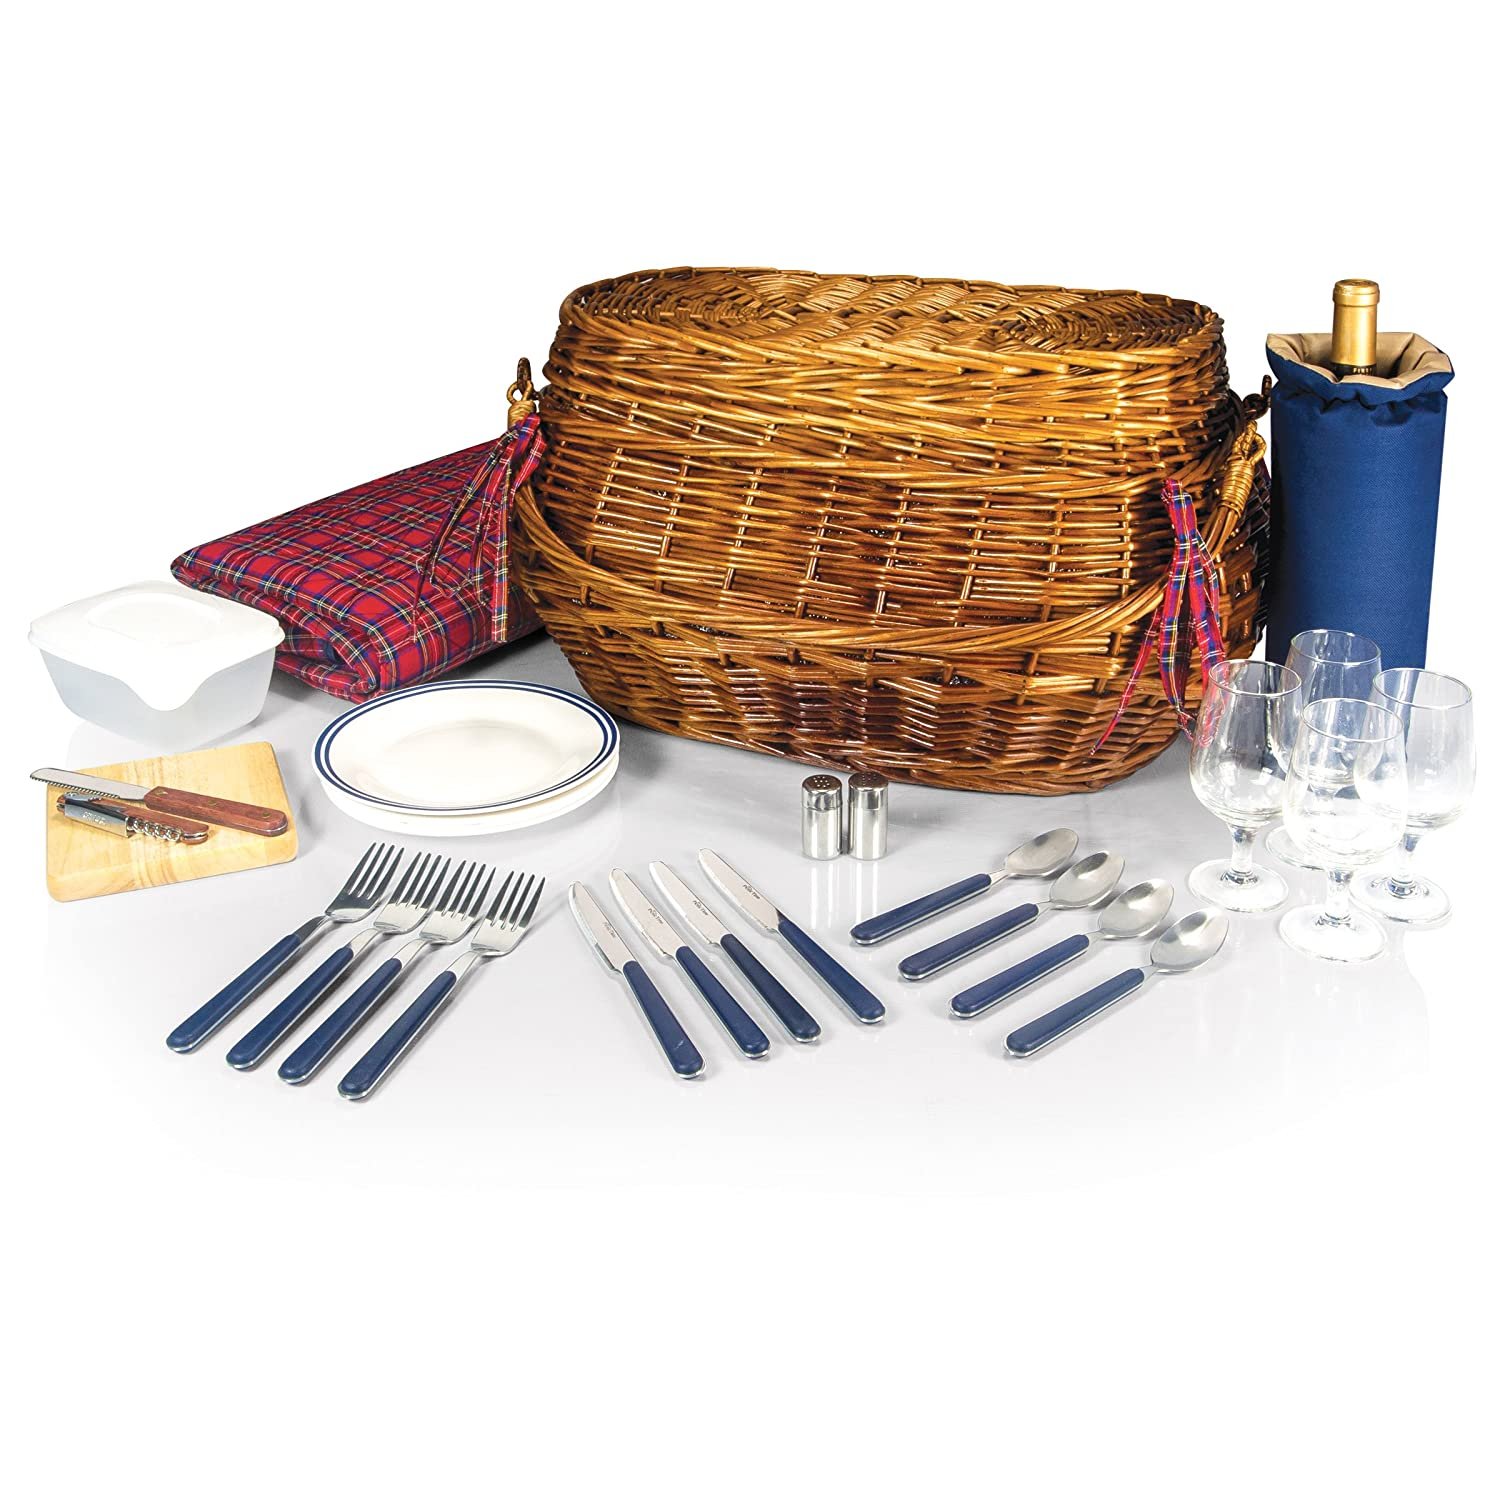 Highlander Bombay Picnic Basket with Deluxe Service for Four